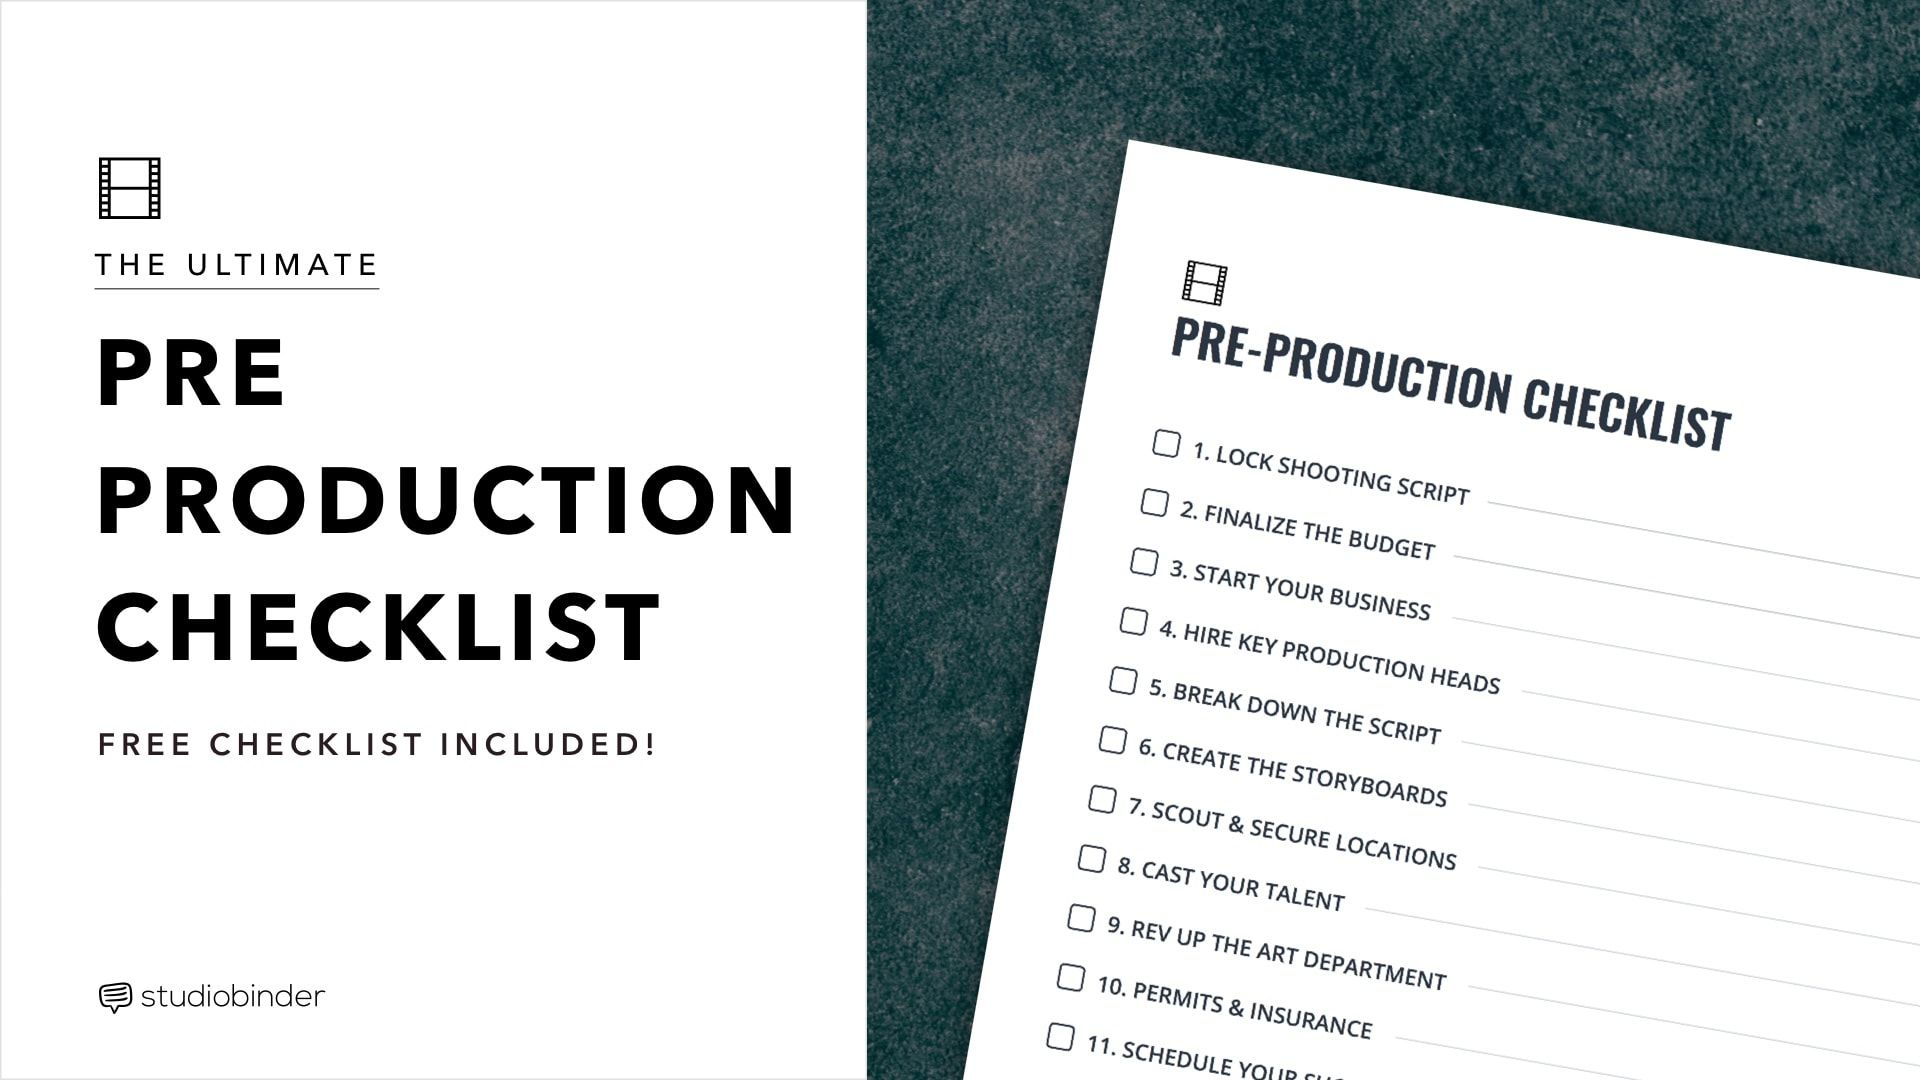 The Ultimate Pre Production Checklist for Film & Video